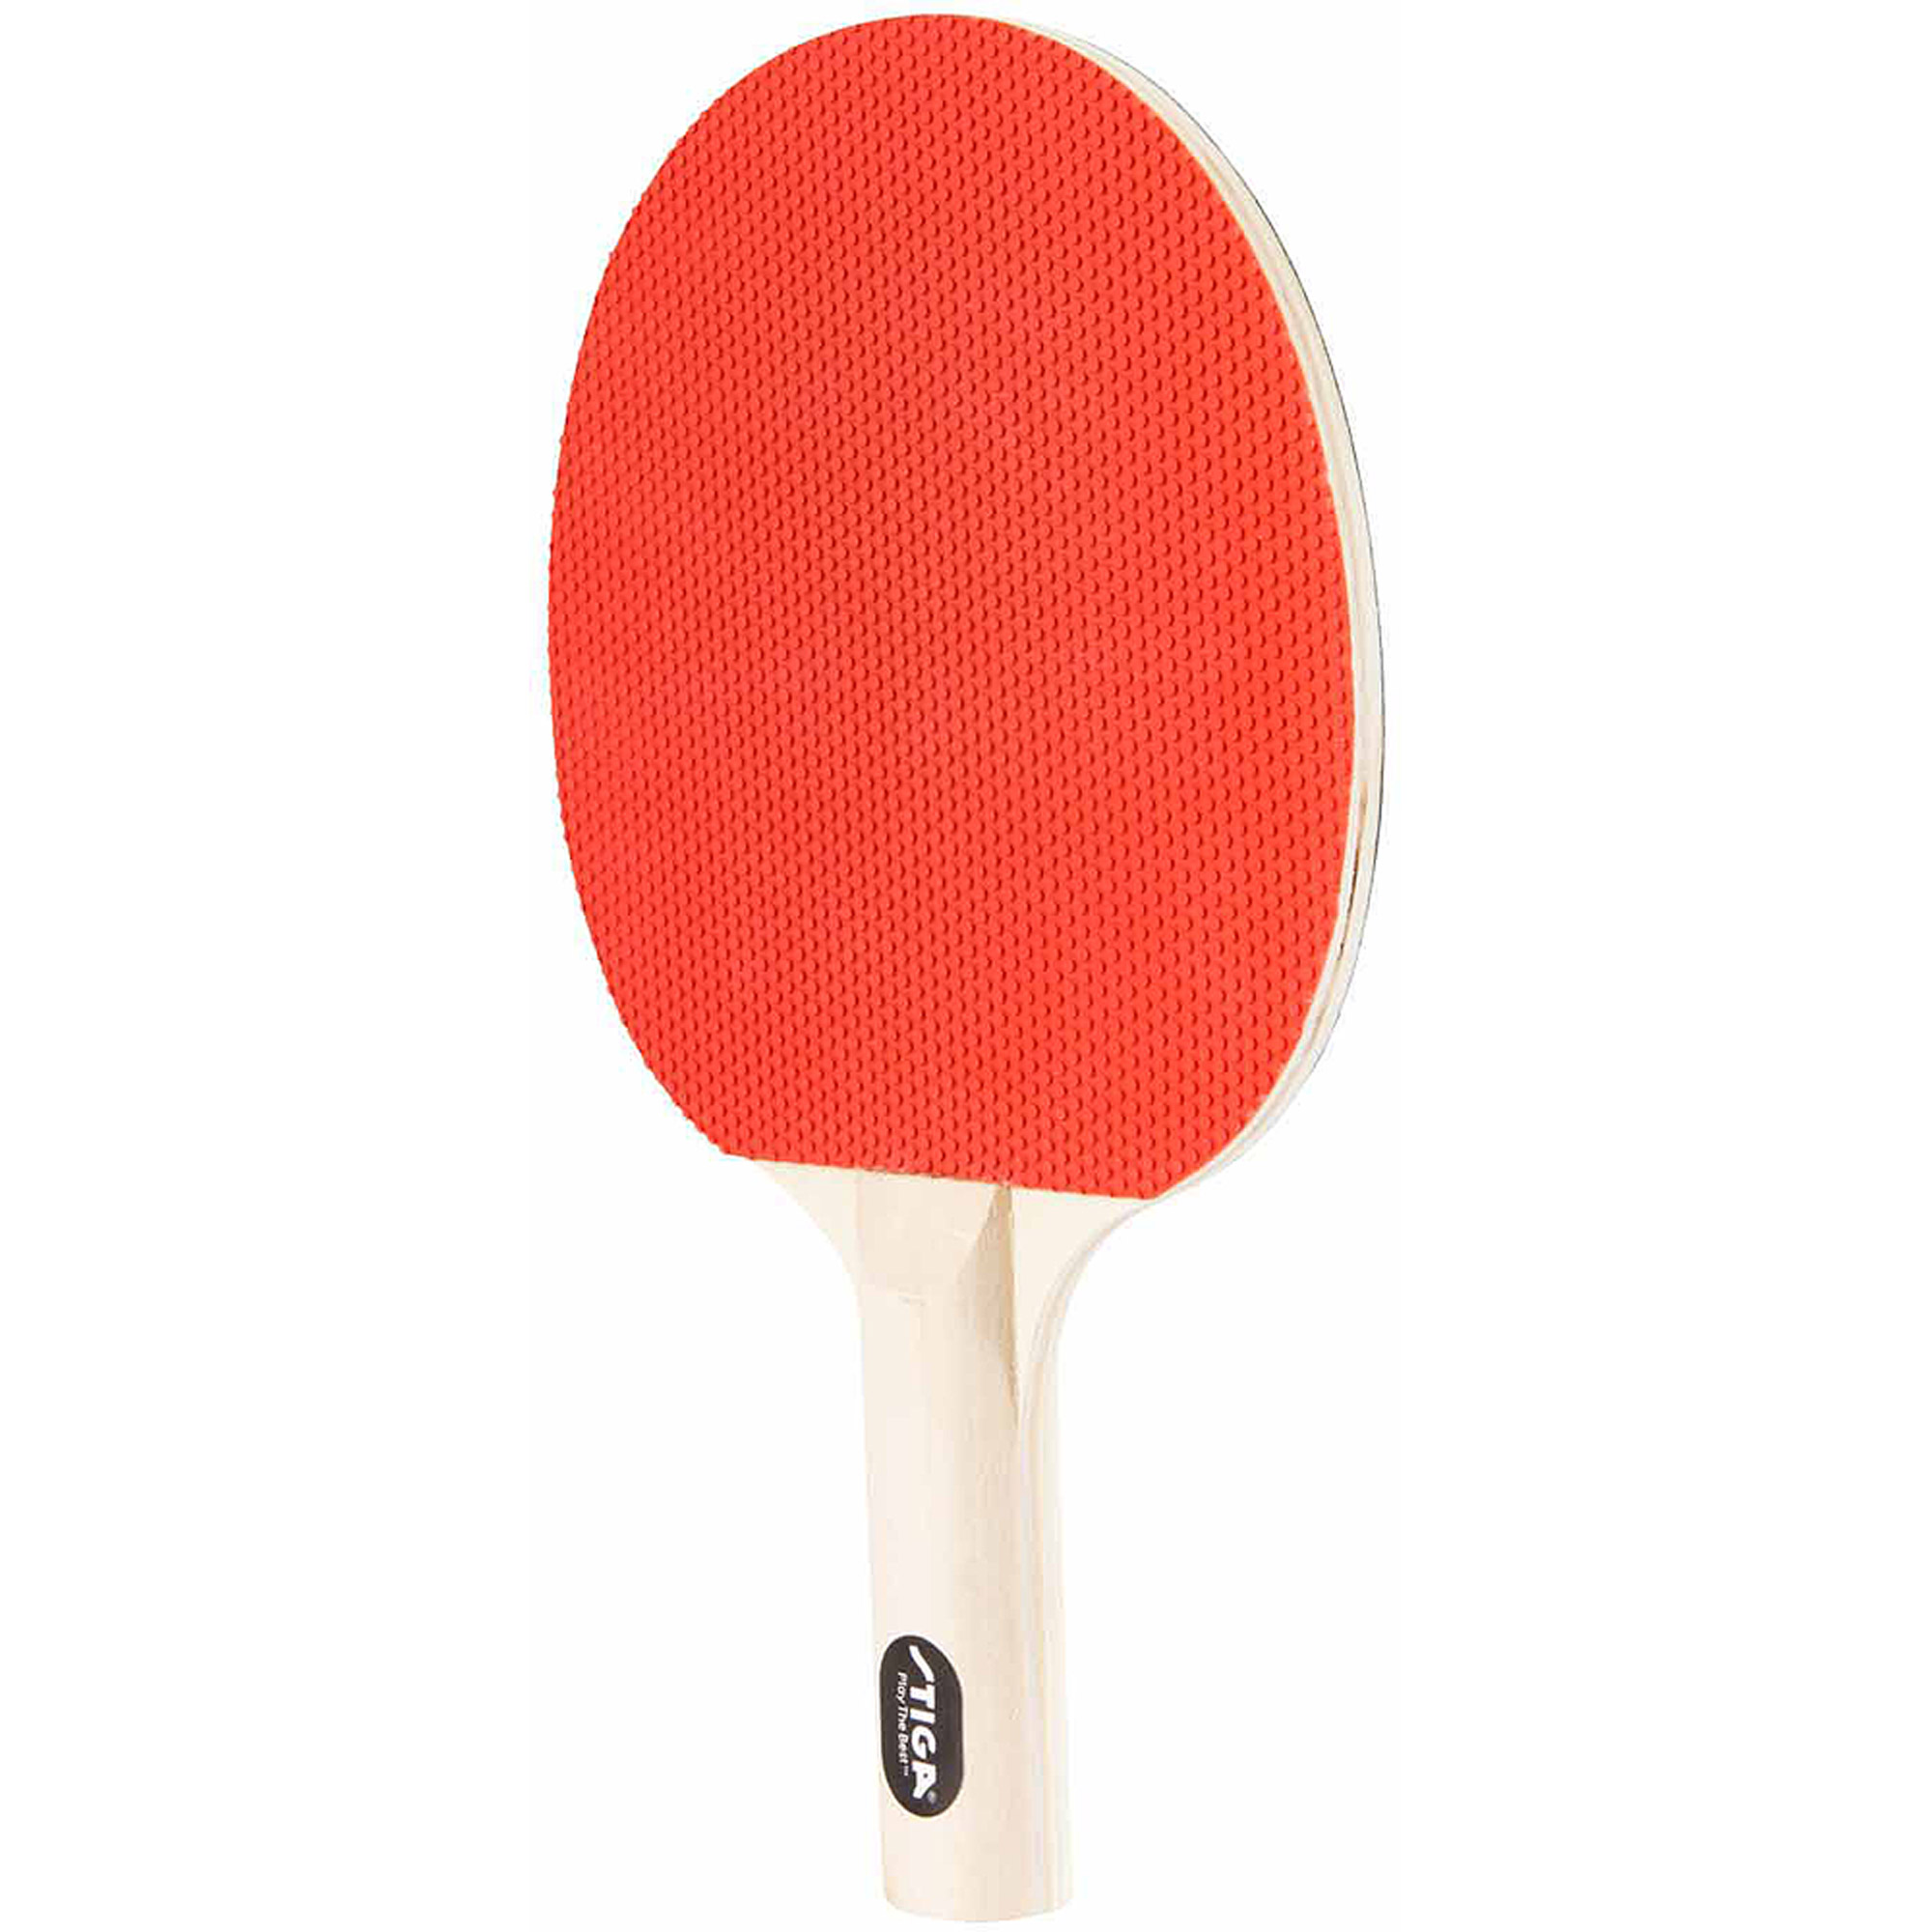 set pl includes outdoor spirit table balls bats protective ping index tennis and cover rev including butterfly green pong net post